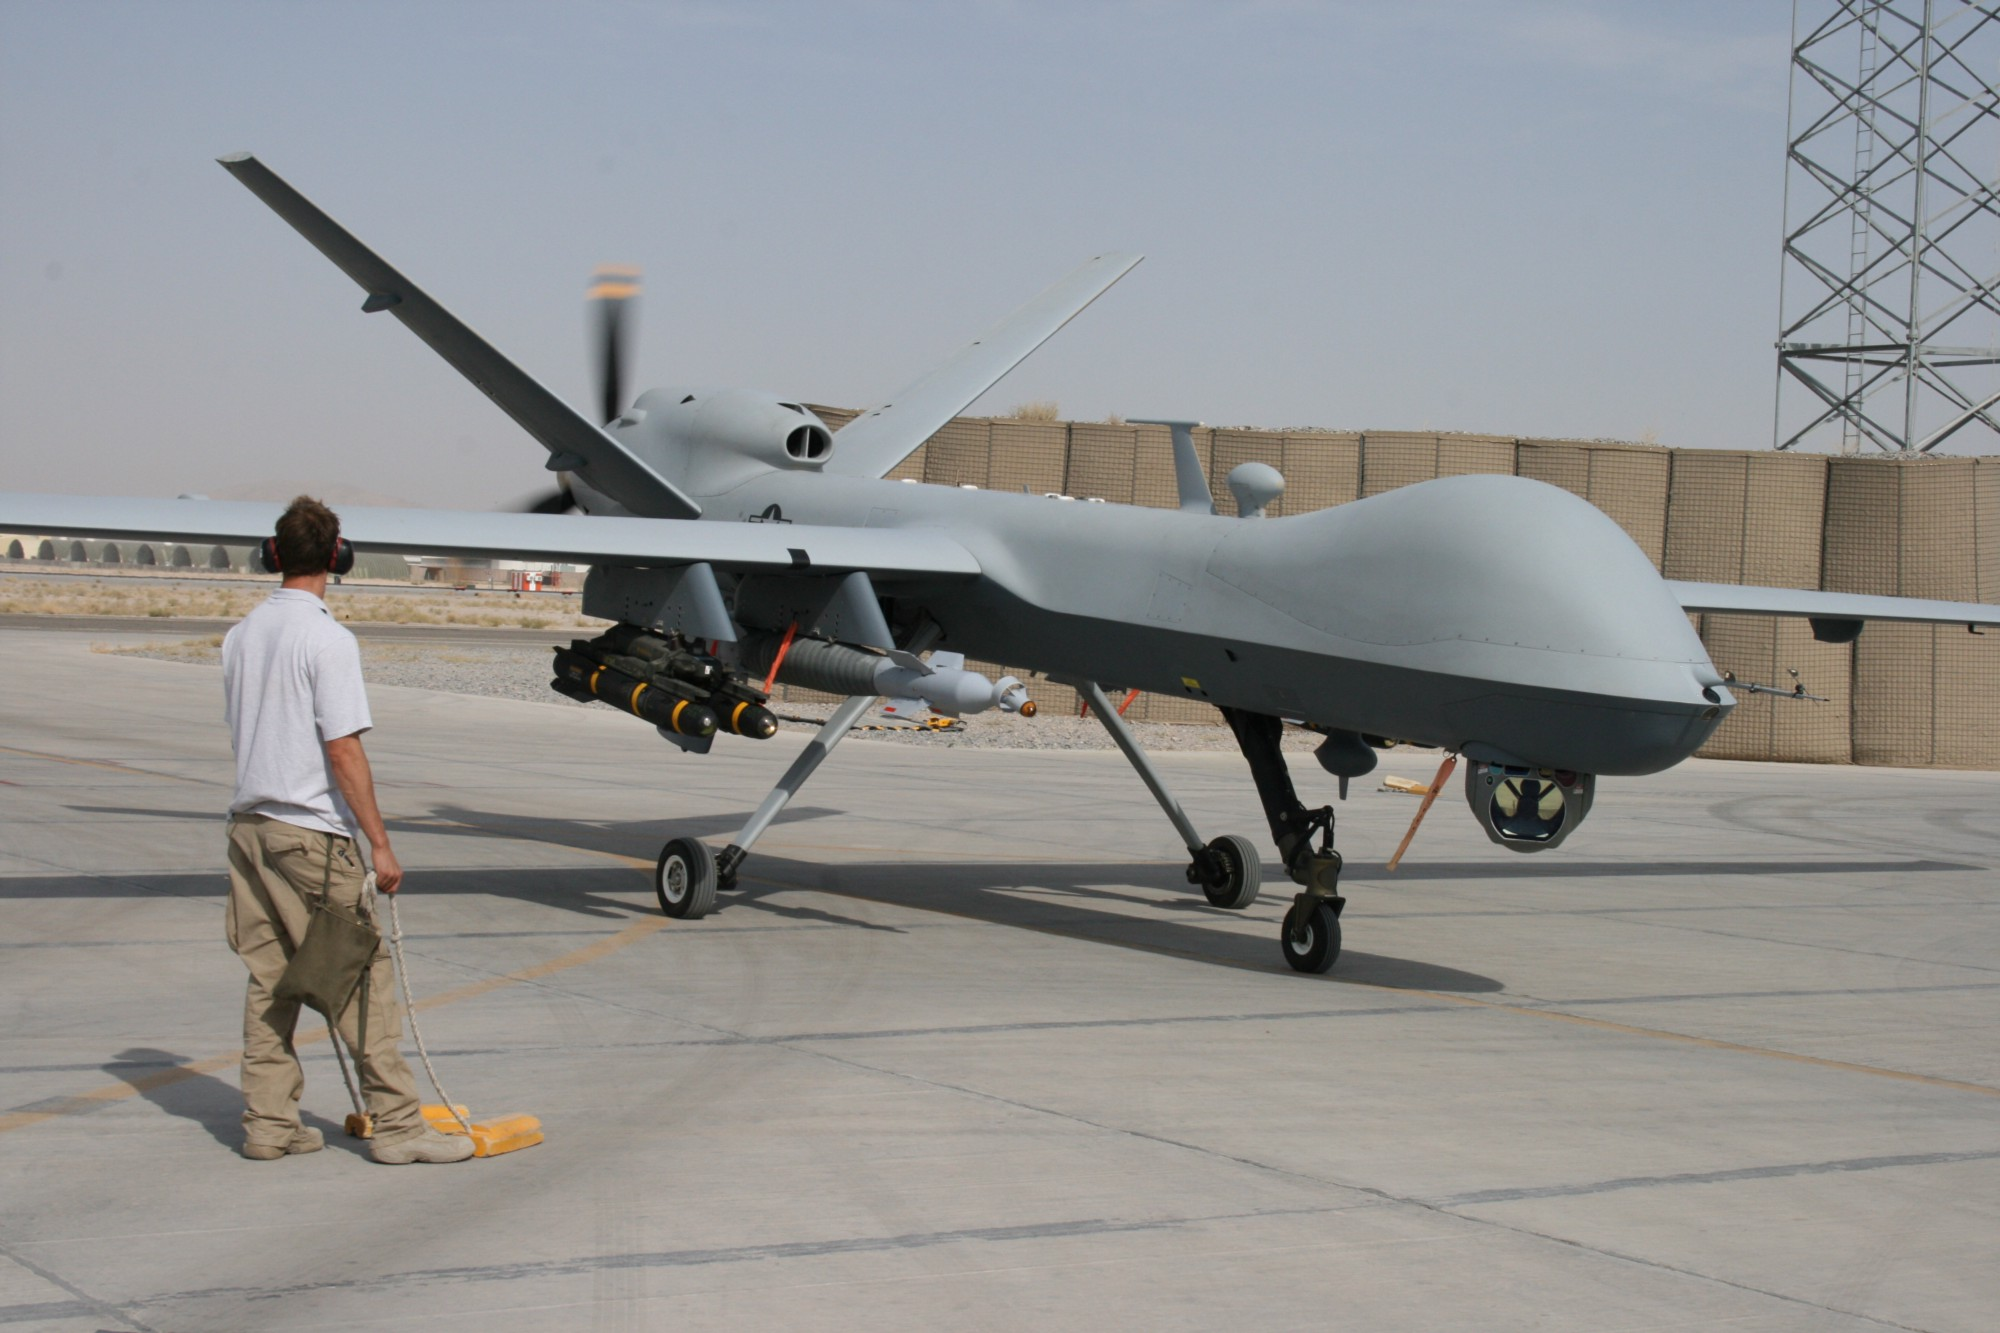 predator drone It's funny because predator drone strikes in pakistan have killed literally hundreds of completely innocent civilians, and now the president is evincing a casual disregard for those lives he is.